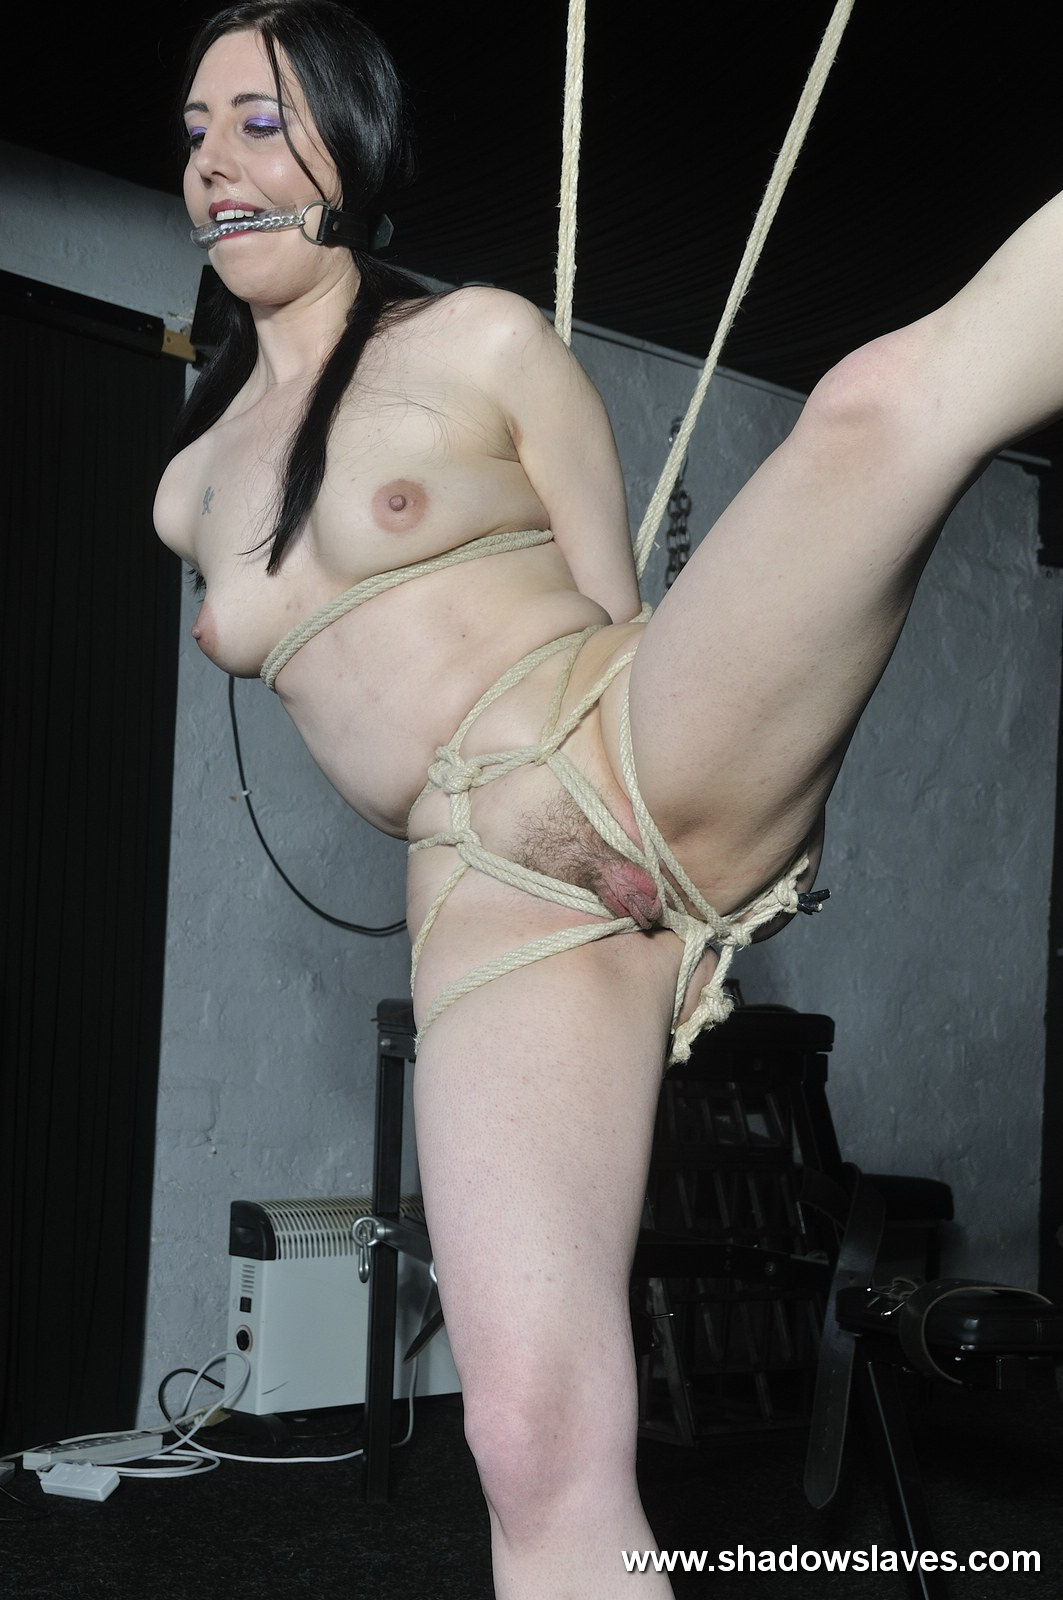 www.shadow slaves.com Visit shadowslaves to see more of our beautiful shadowslaves.